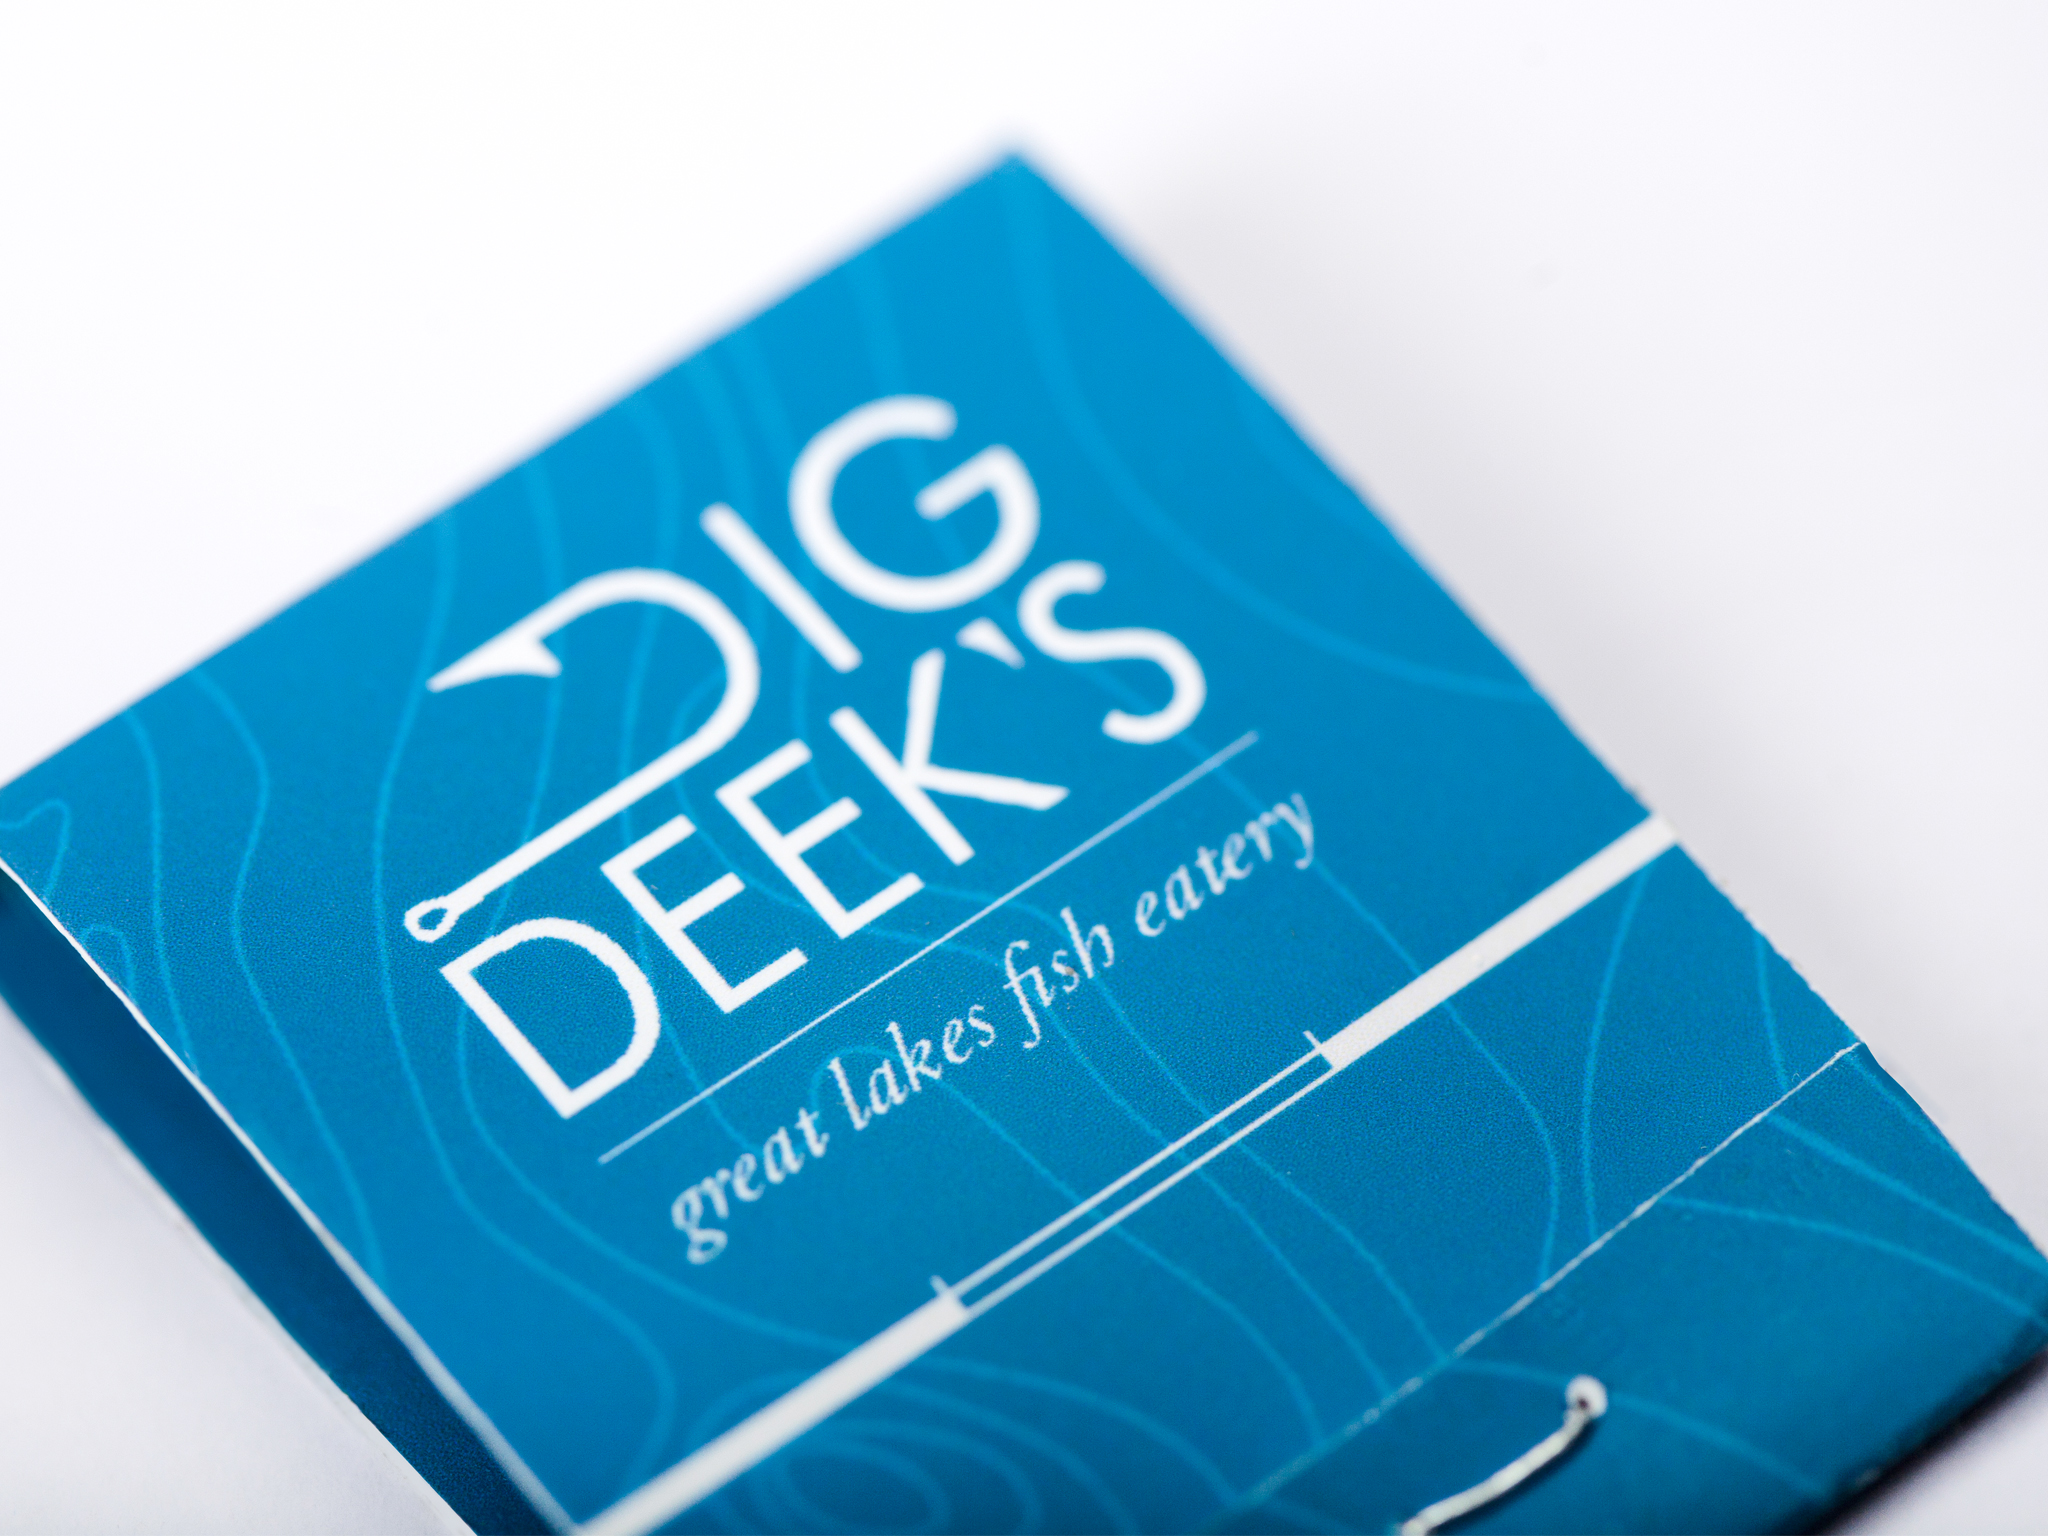 Dig Deek's   Branding, packaging & marketing